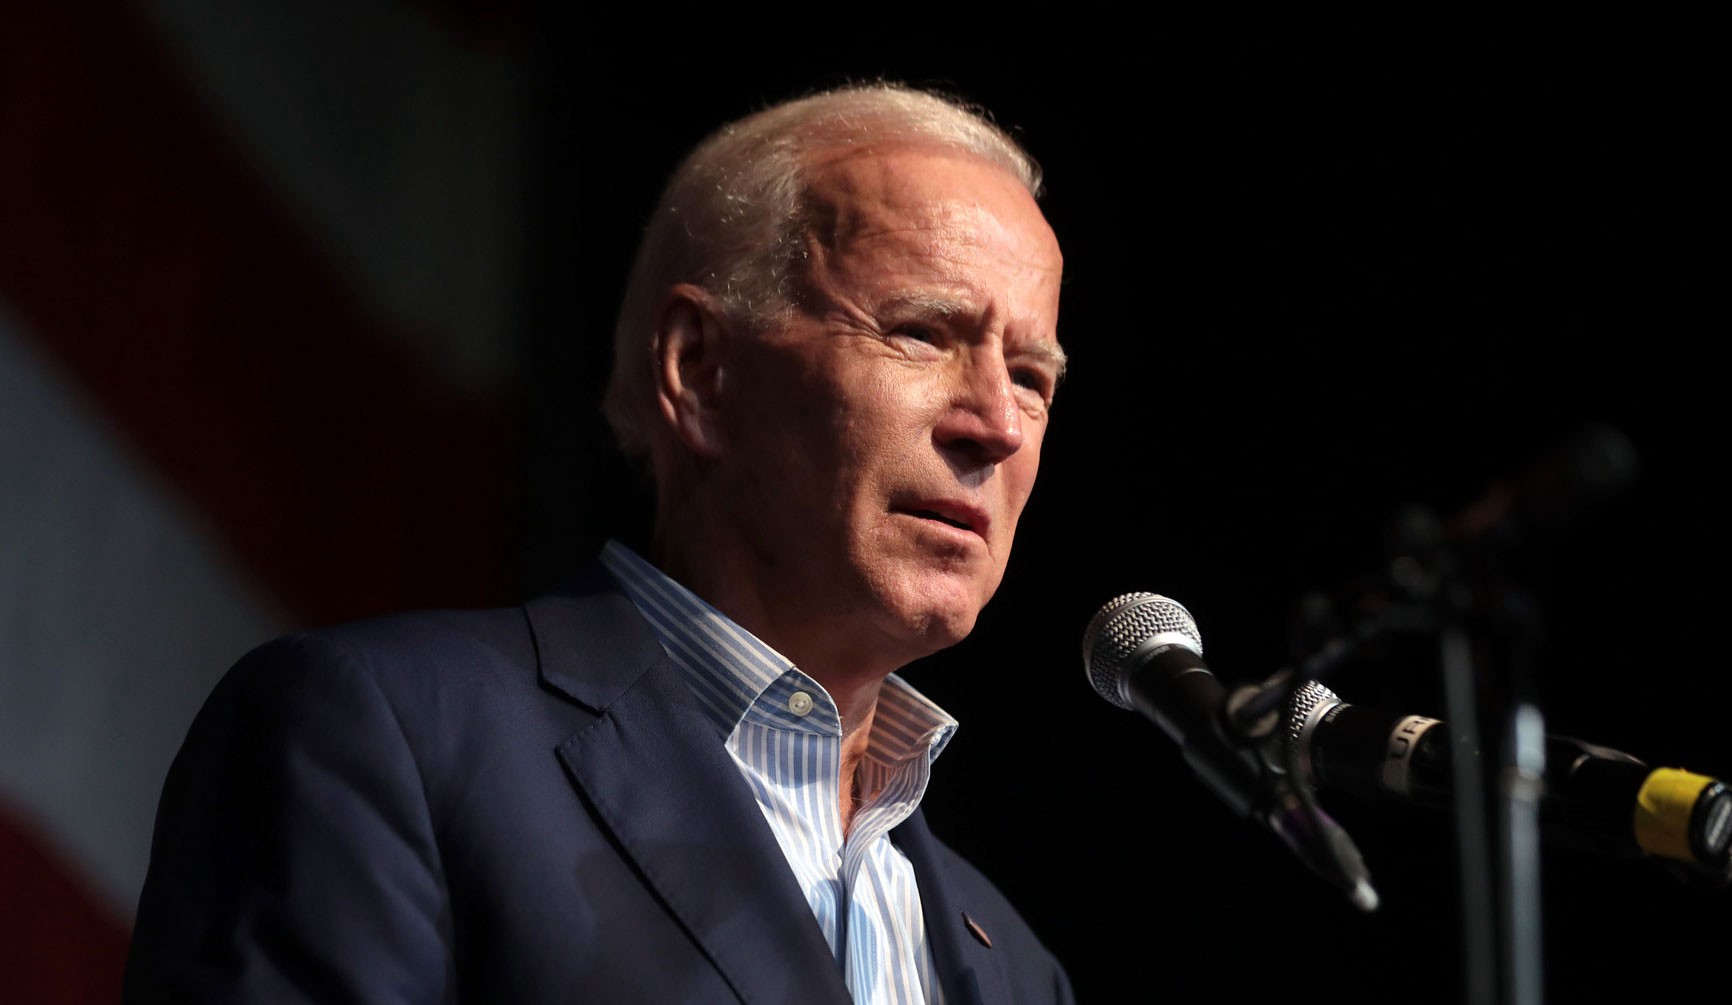 Is Joe Biden the Dem's Latest William Jennings Bryan? Comparing Dog-in-the-Manger Candidates